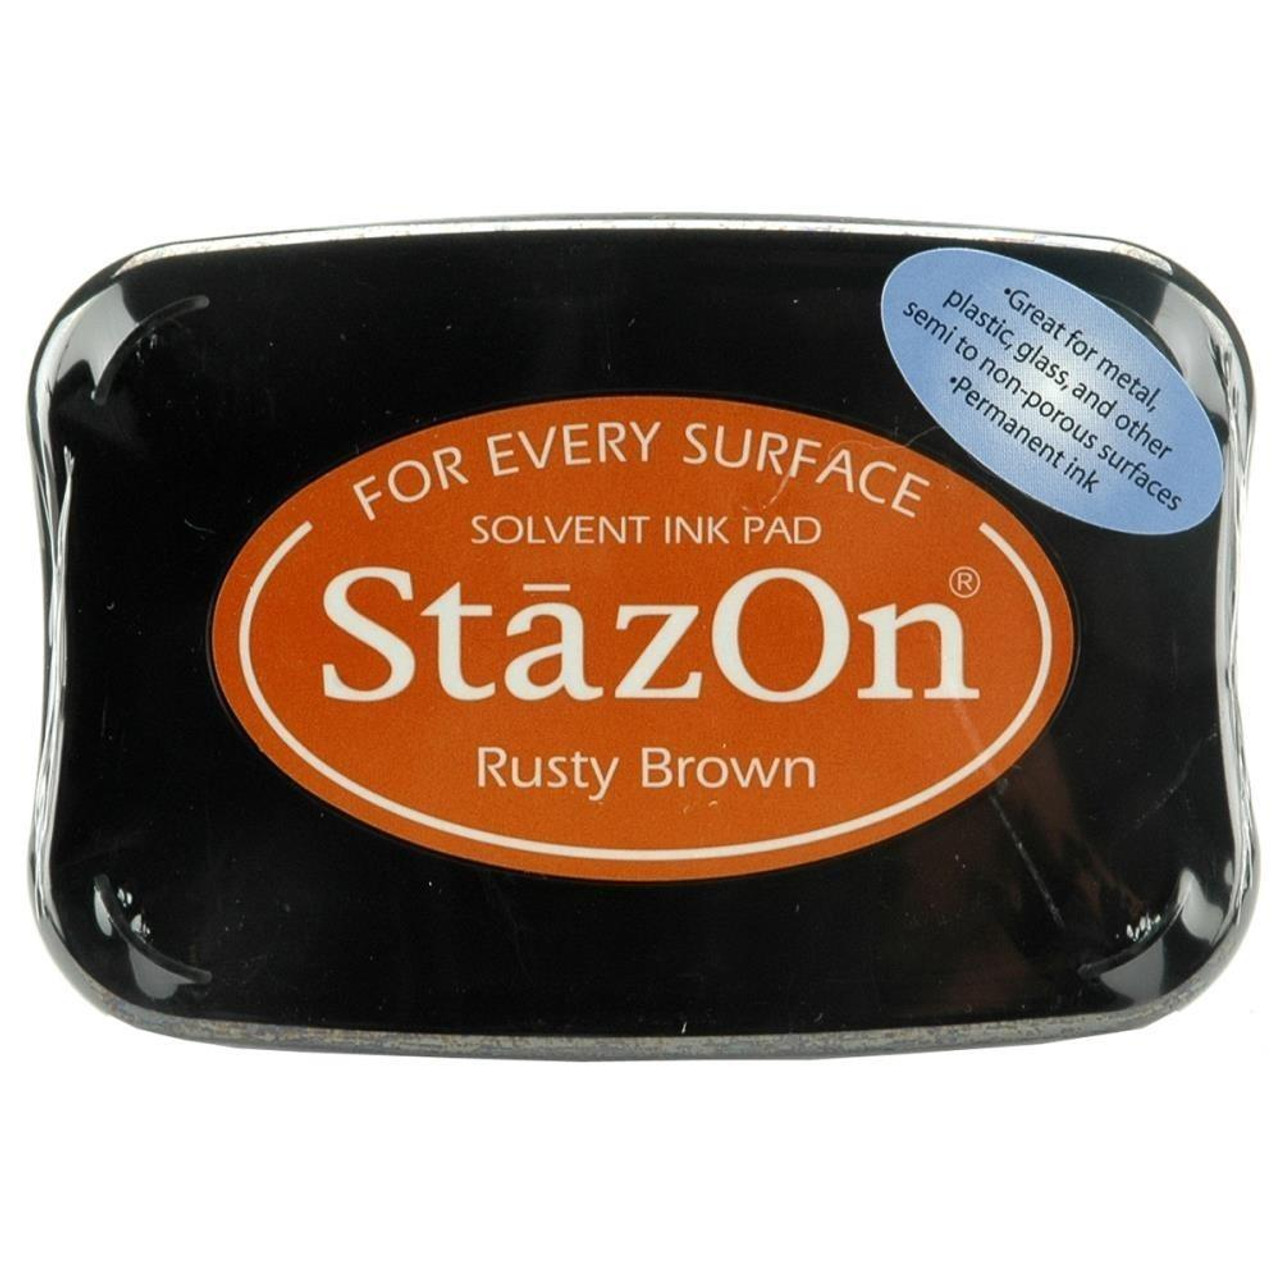 Staz-On - Solvent Ink - Rusty Brown